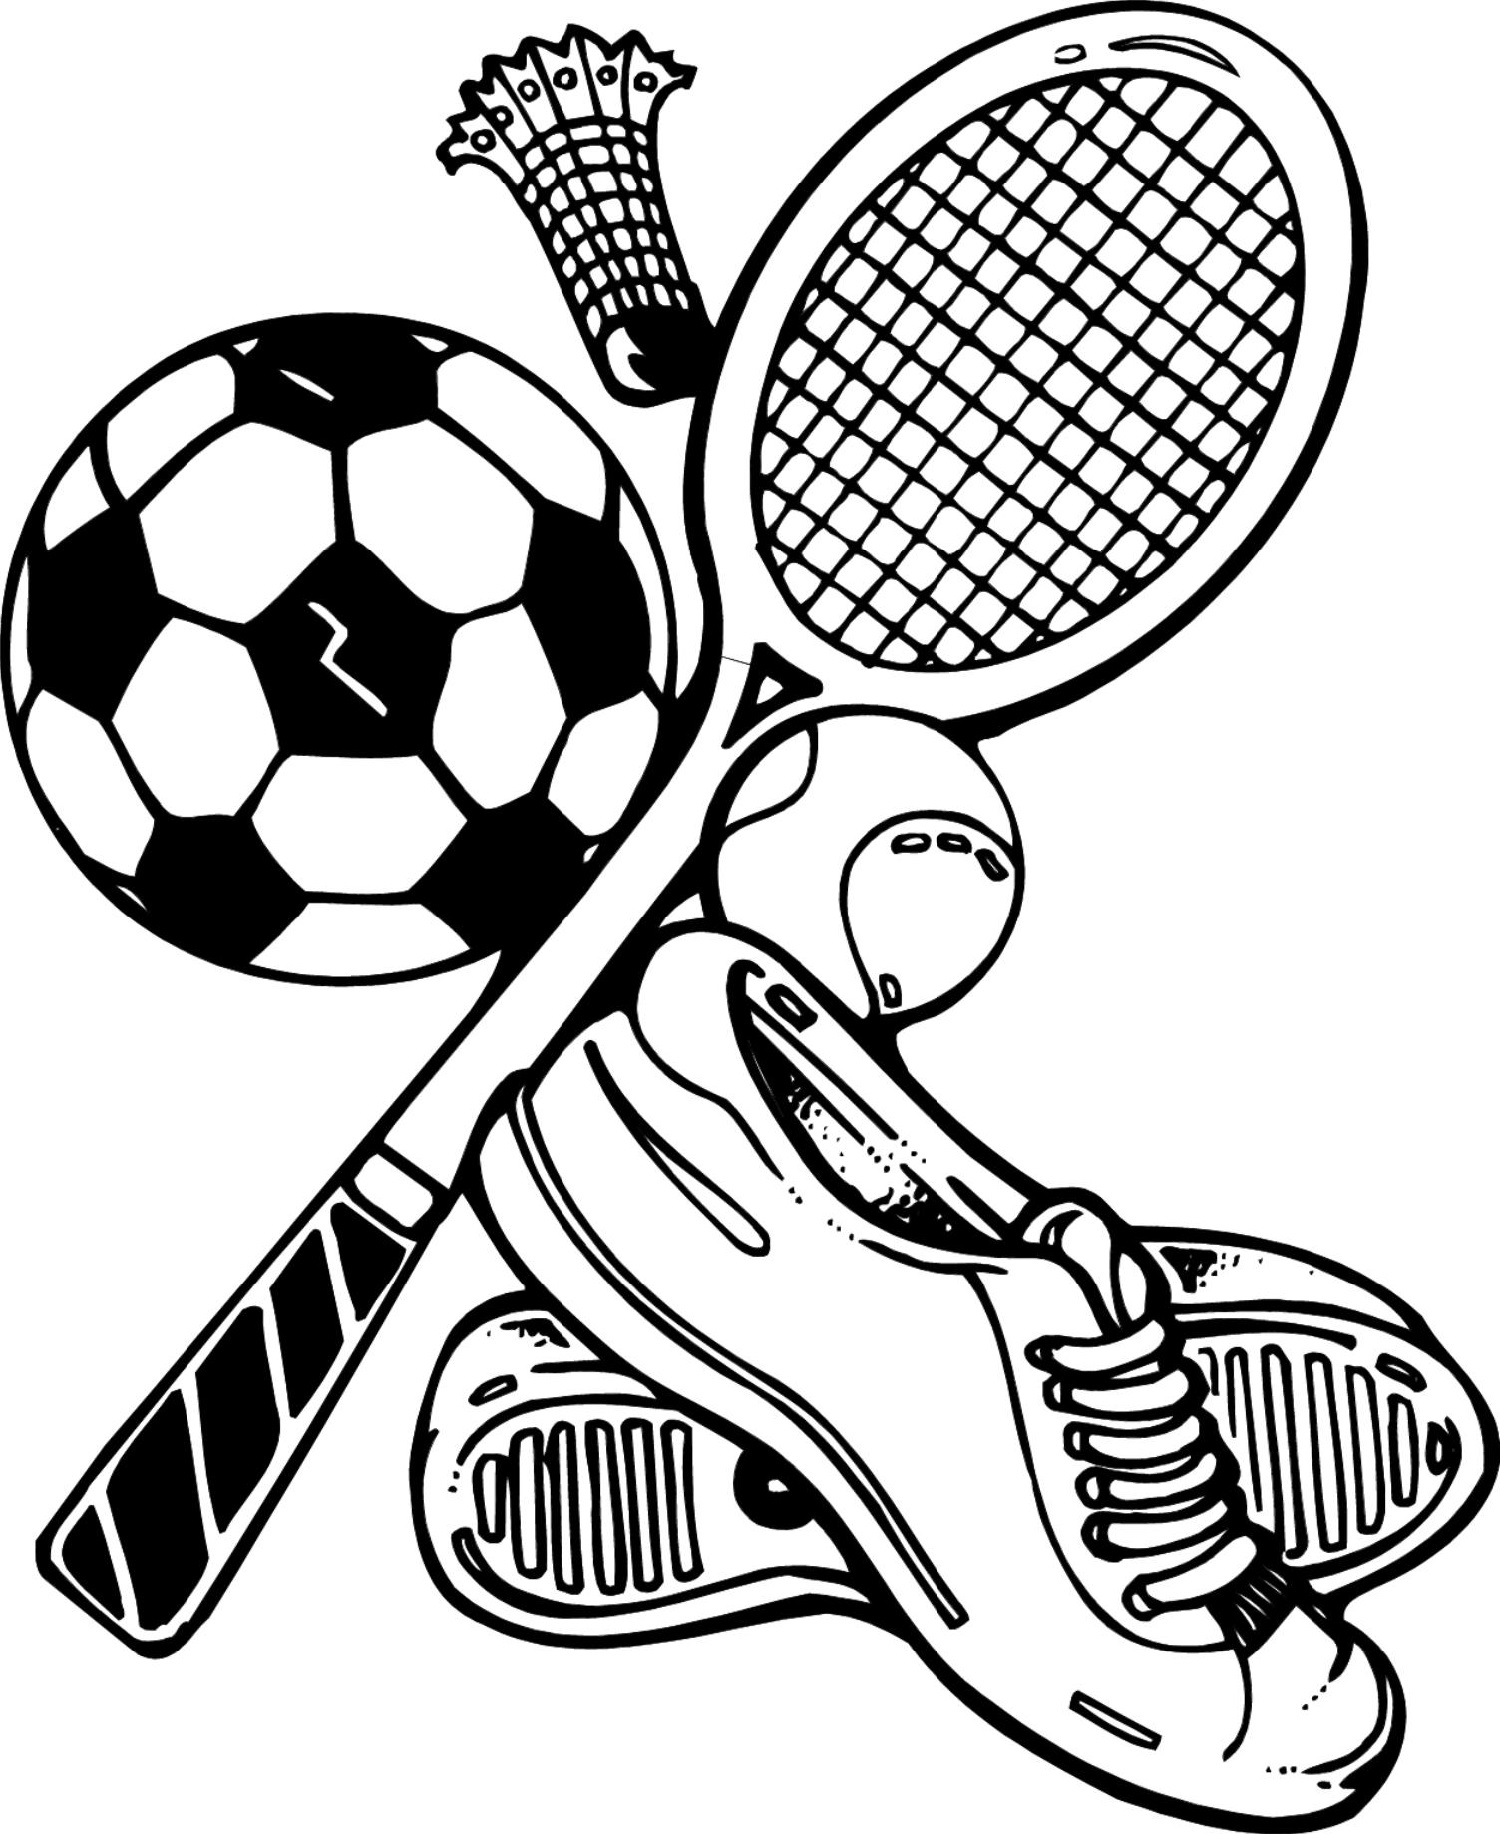 sports pictures to color tennis coloring pages for childrens printable for free color pictures sports to